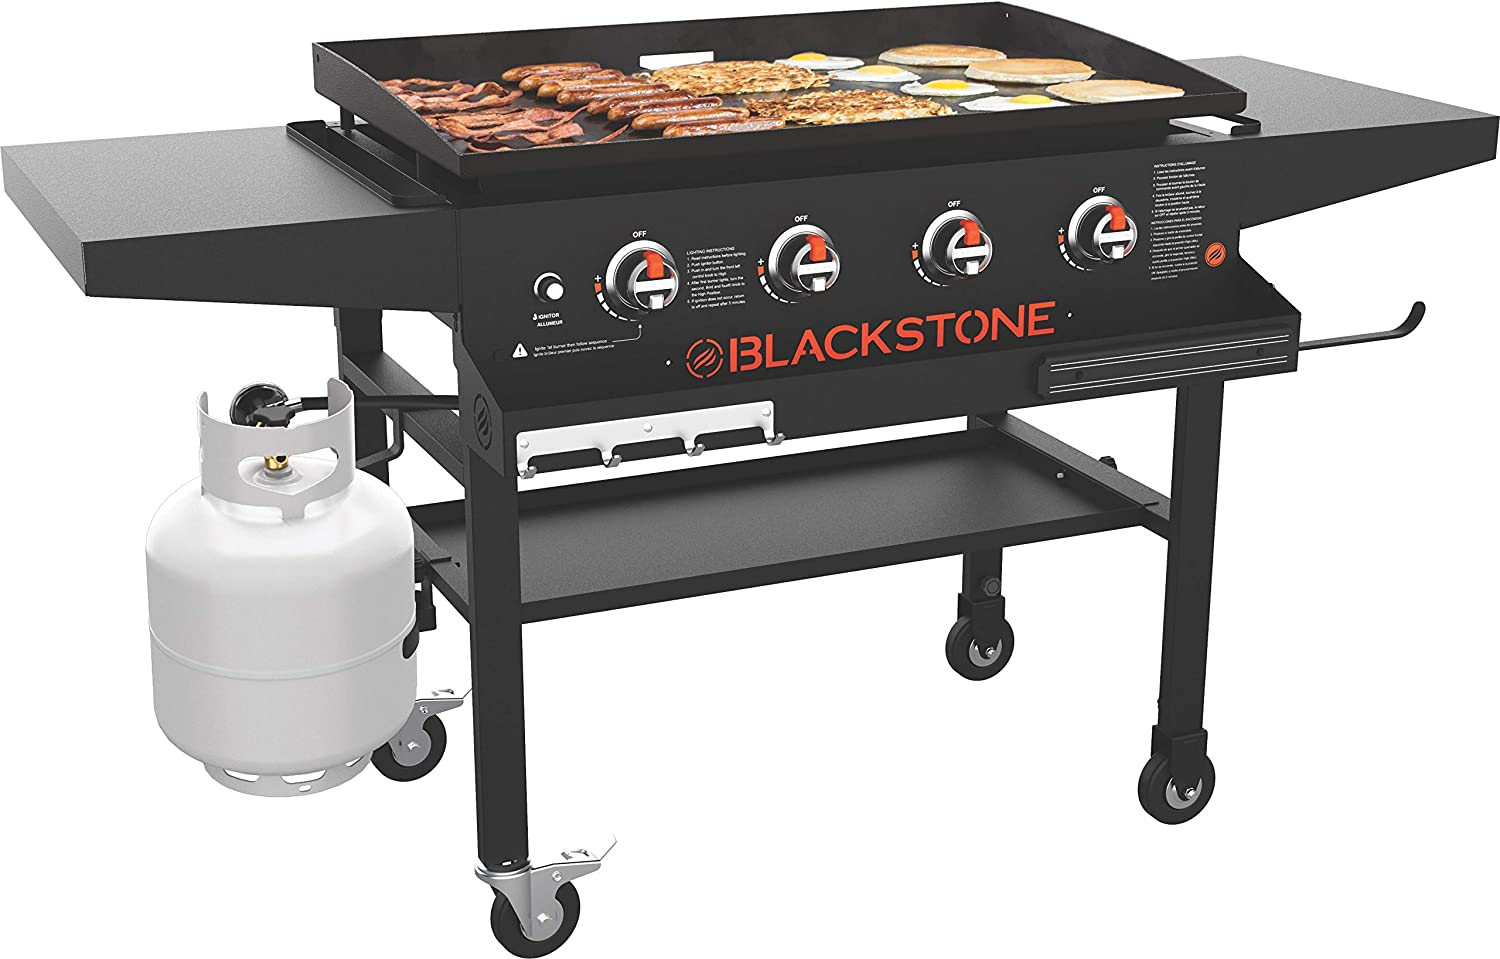 Outdoor Black Blackstone 1984 Front Shelf 36 Inches Tailgating Camping Side Shelf /& Magnetic Strip Heavy Duty Flat Top Griddle Grill Station for Kitchen